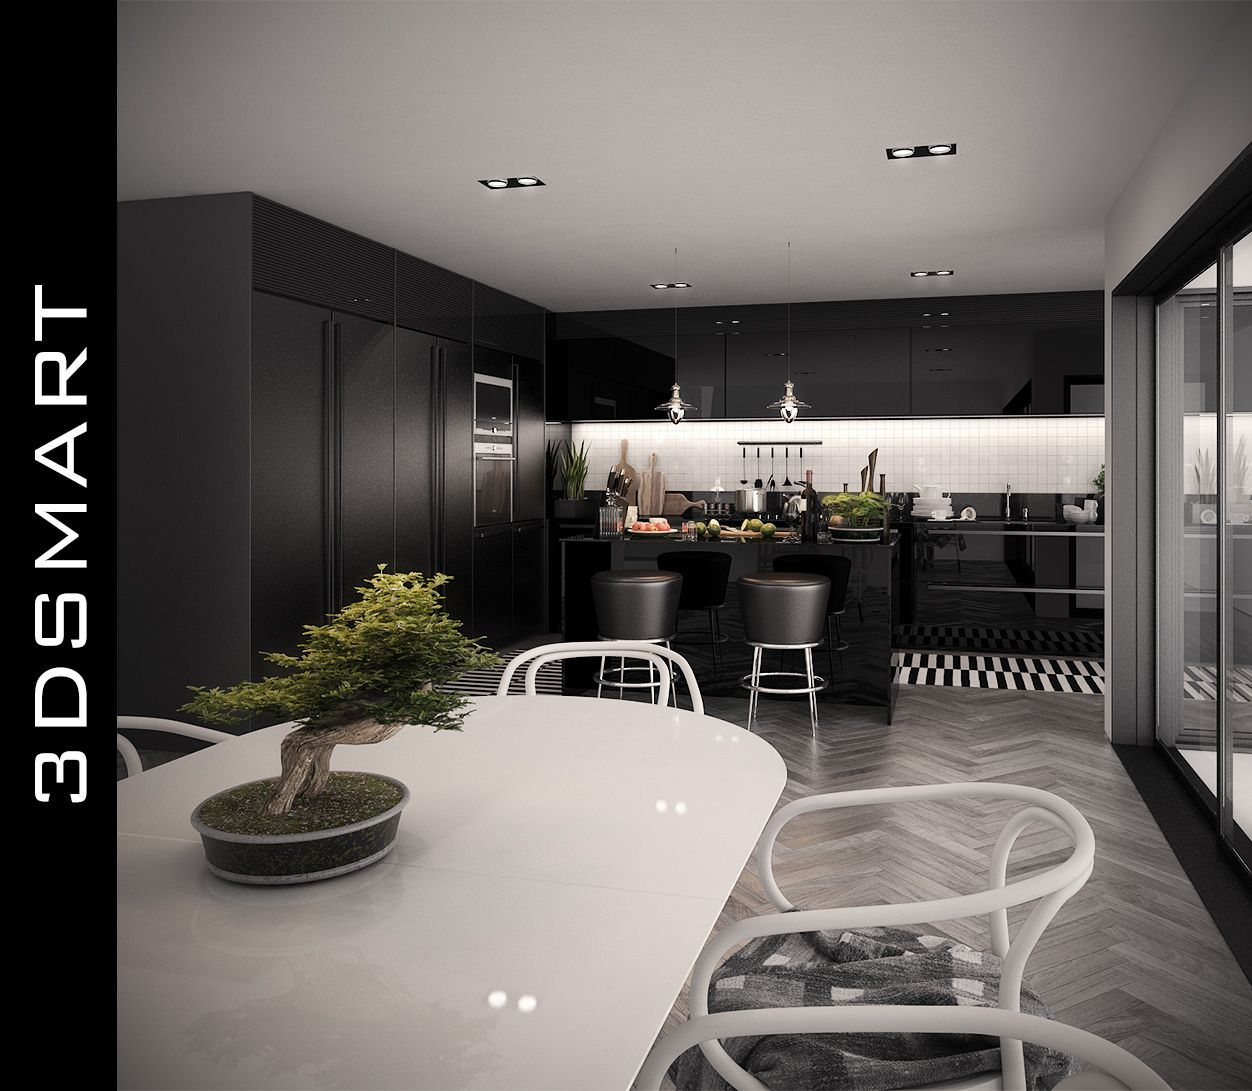 Beautiful Modern Kitchen Design By Romet Mets Used